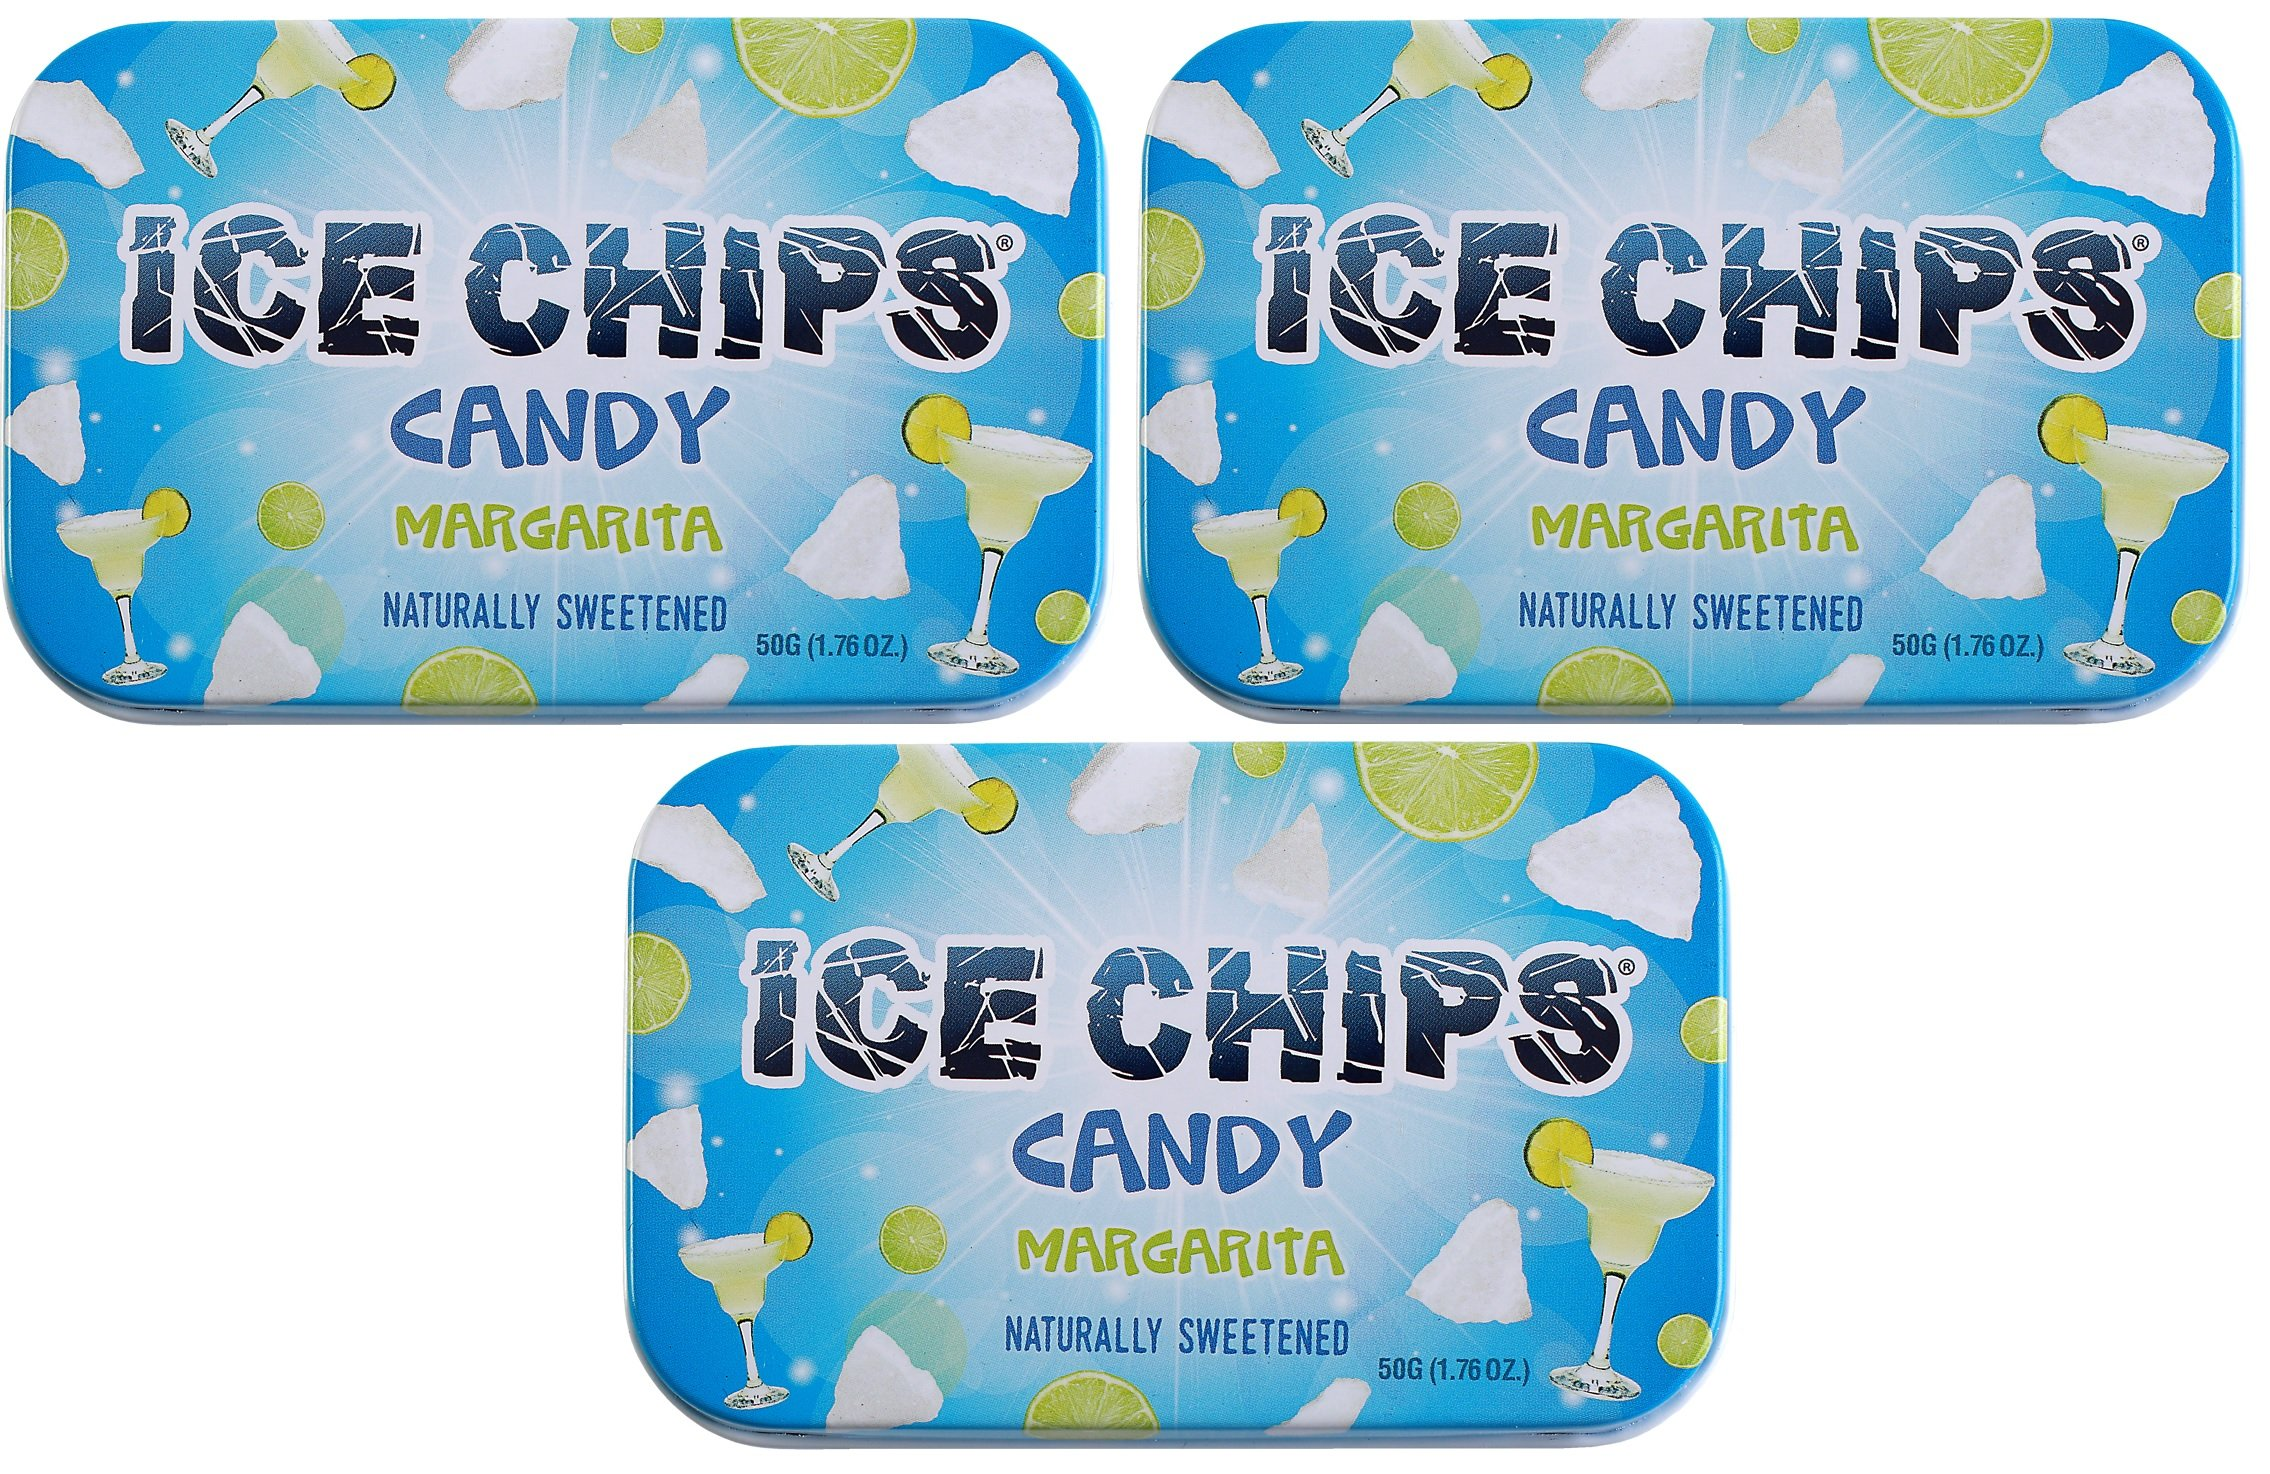 ICE CHIPS Xylitol Candy Tins (Margarita, 3 Pack) - Includes BAND as shown